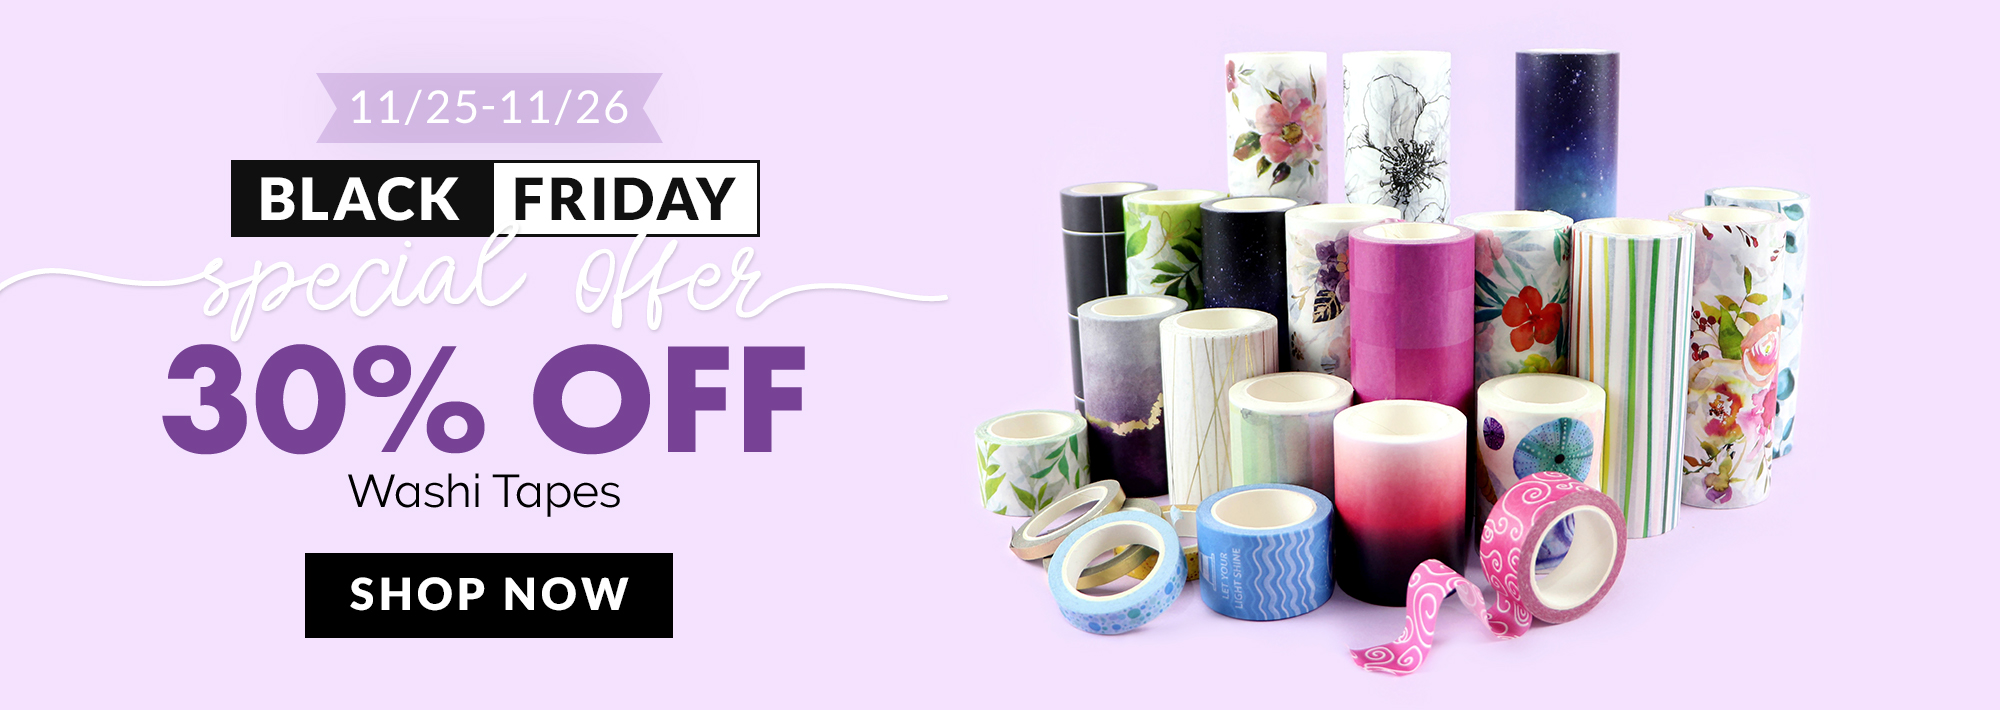 30% off washi tapes